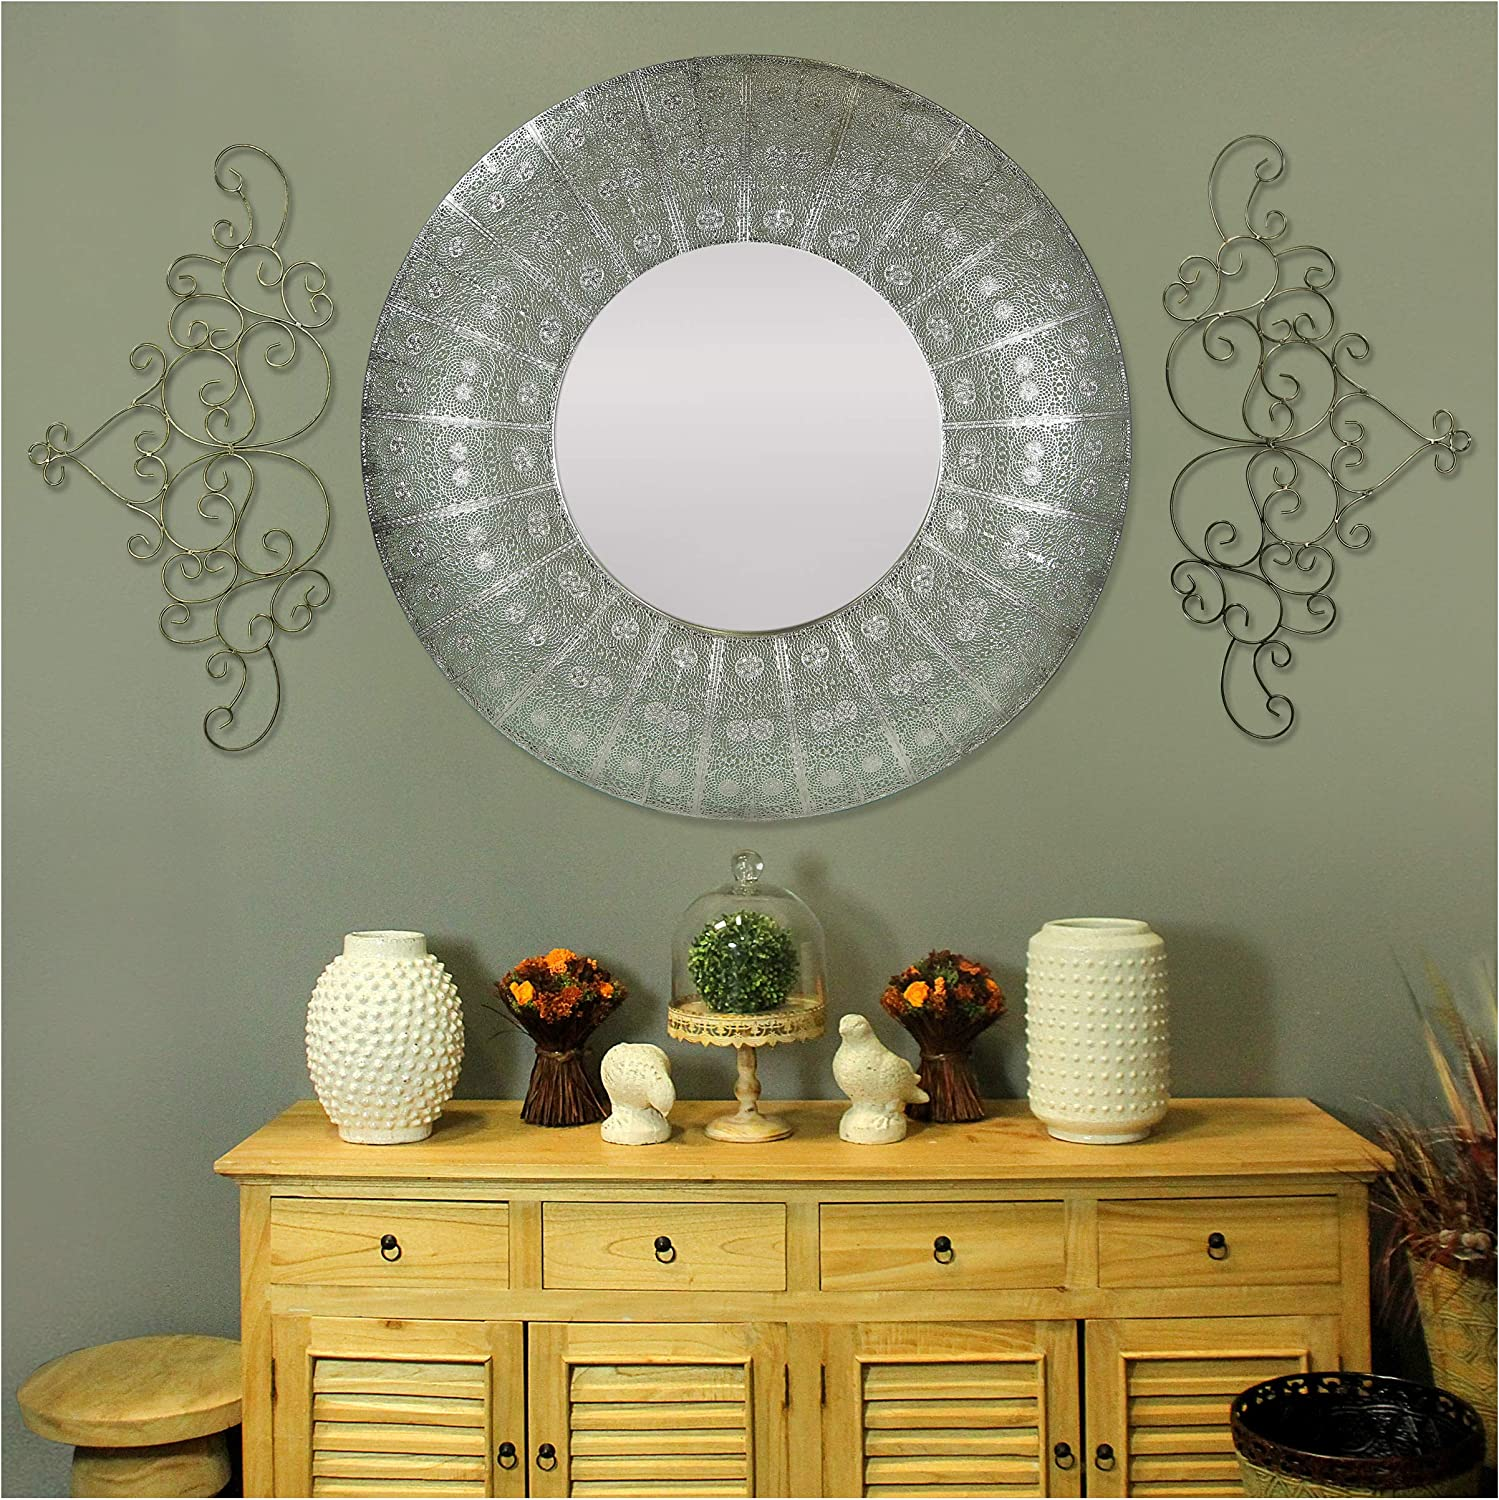 Silver Round Wall Mirror - 36 Inch Large Round Mirror, Rustic Accent Mirror for Bathroom, Entry, Dining Room, Living Room. Metal Black Round Mirror for Wall, Vanity Mirror Large Circle Wall Mirror